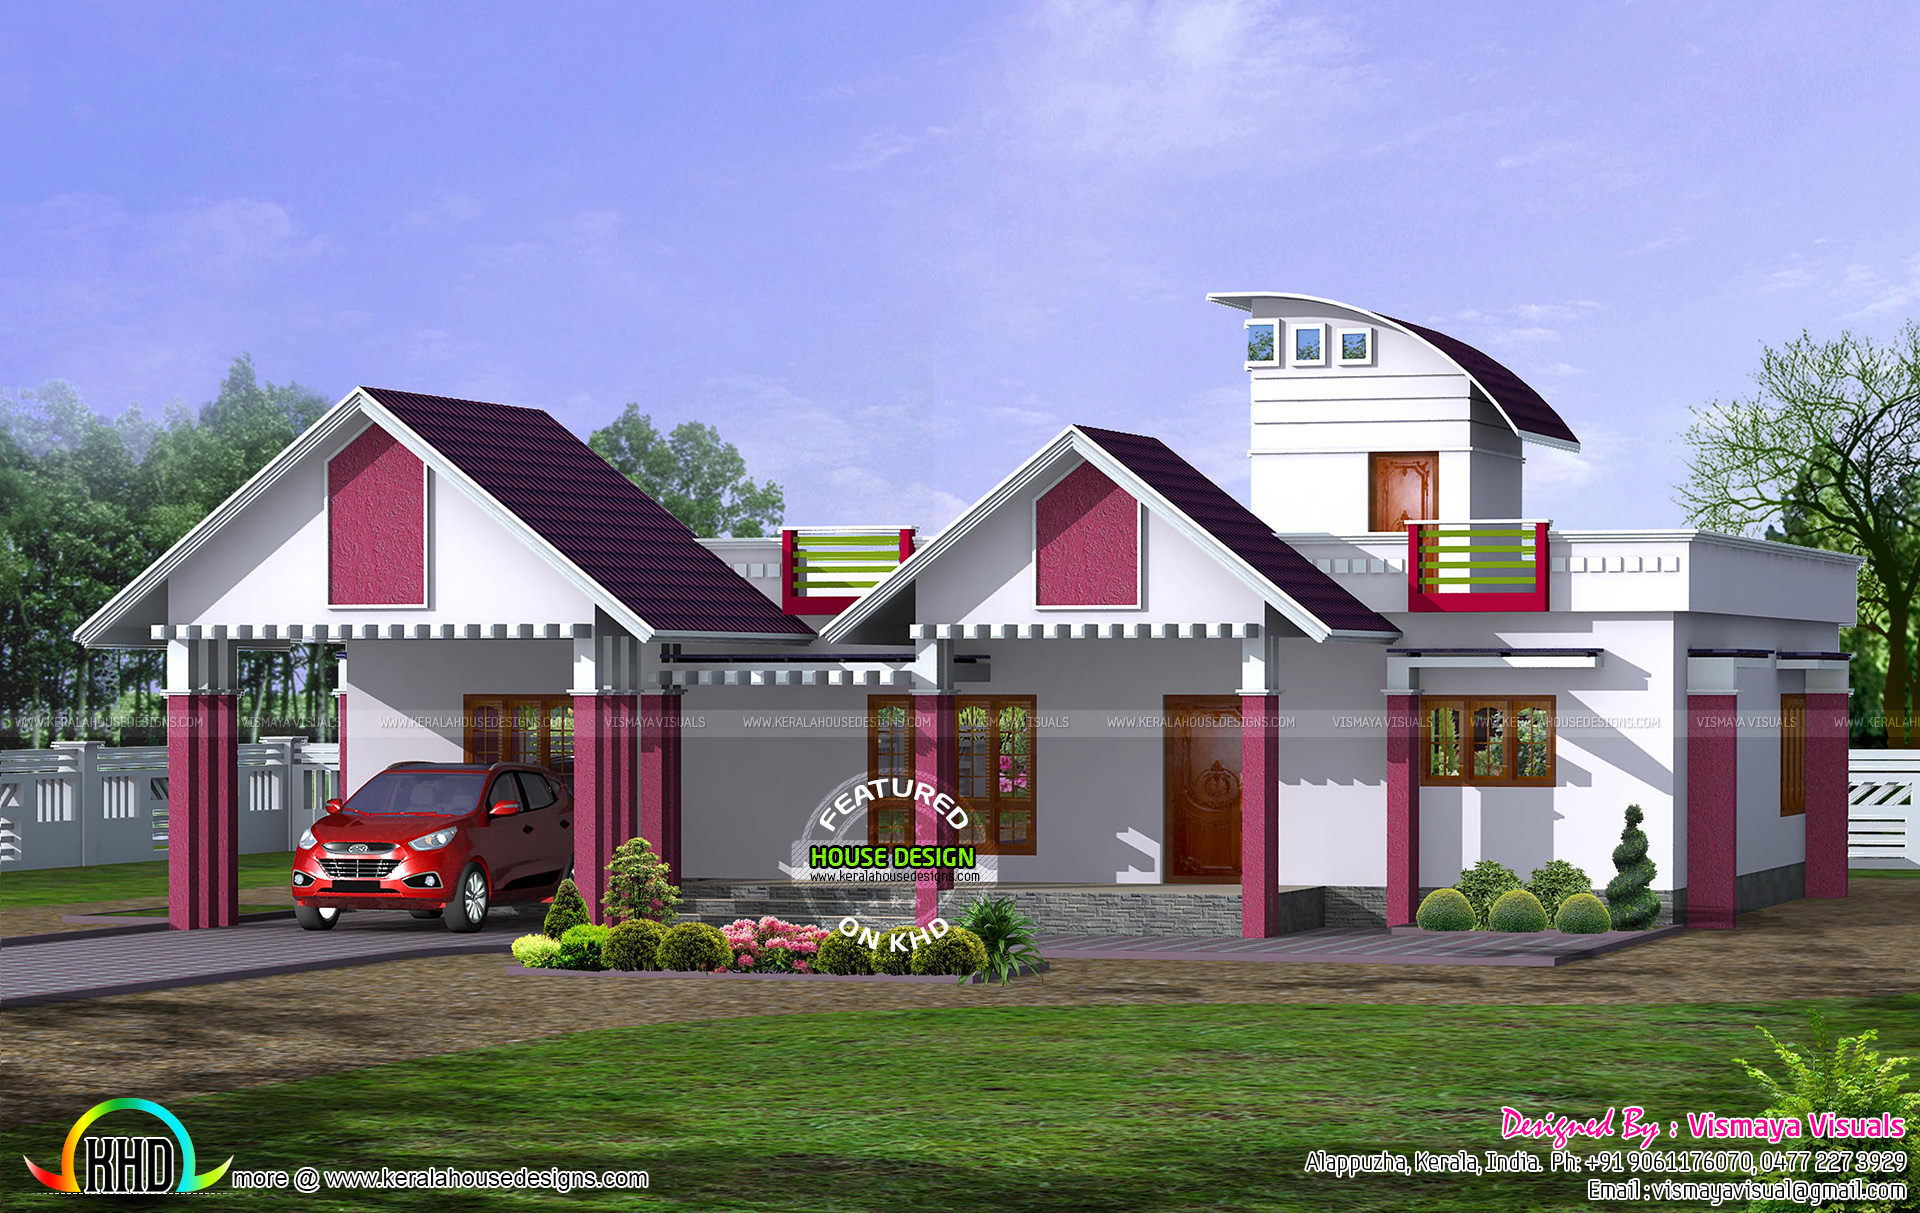 fancy house plans of 1970 3000 to 4000 sq ft house home